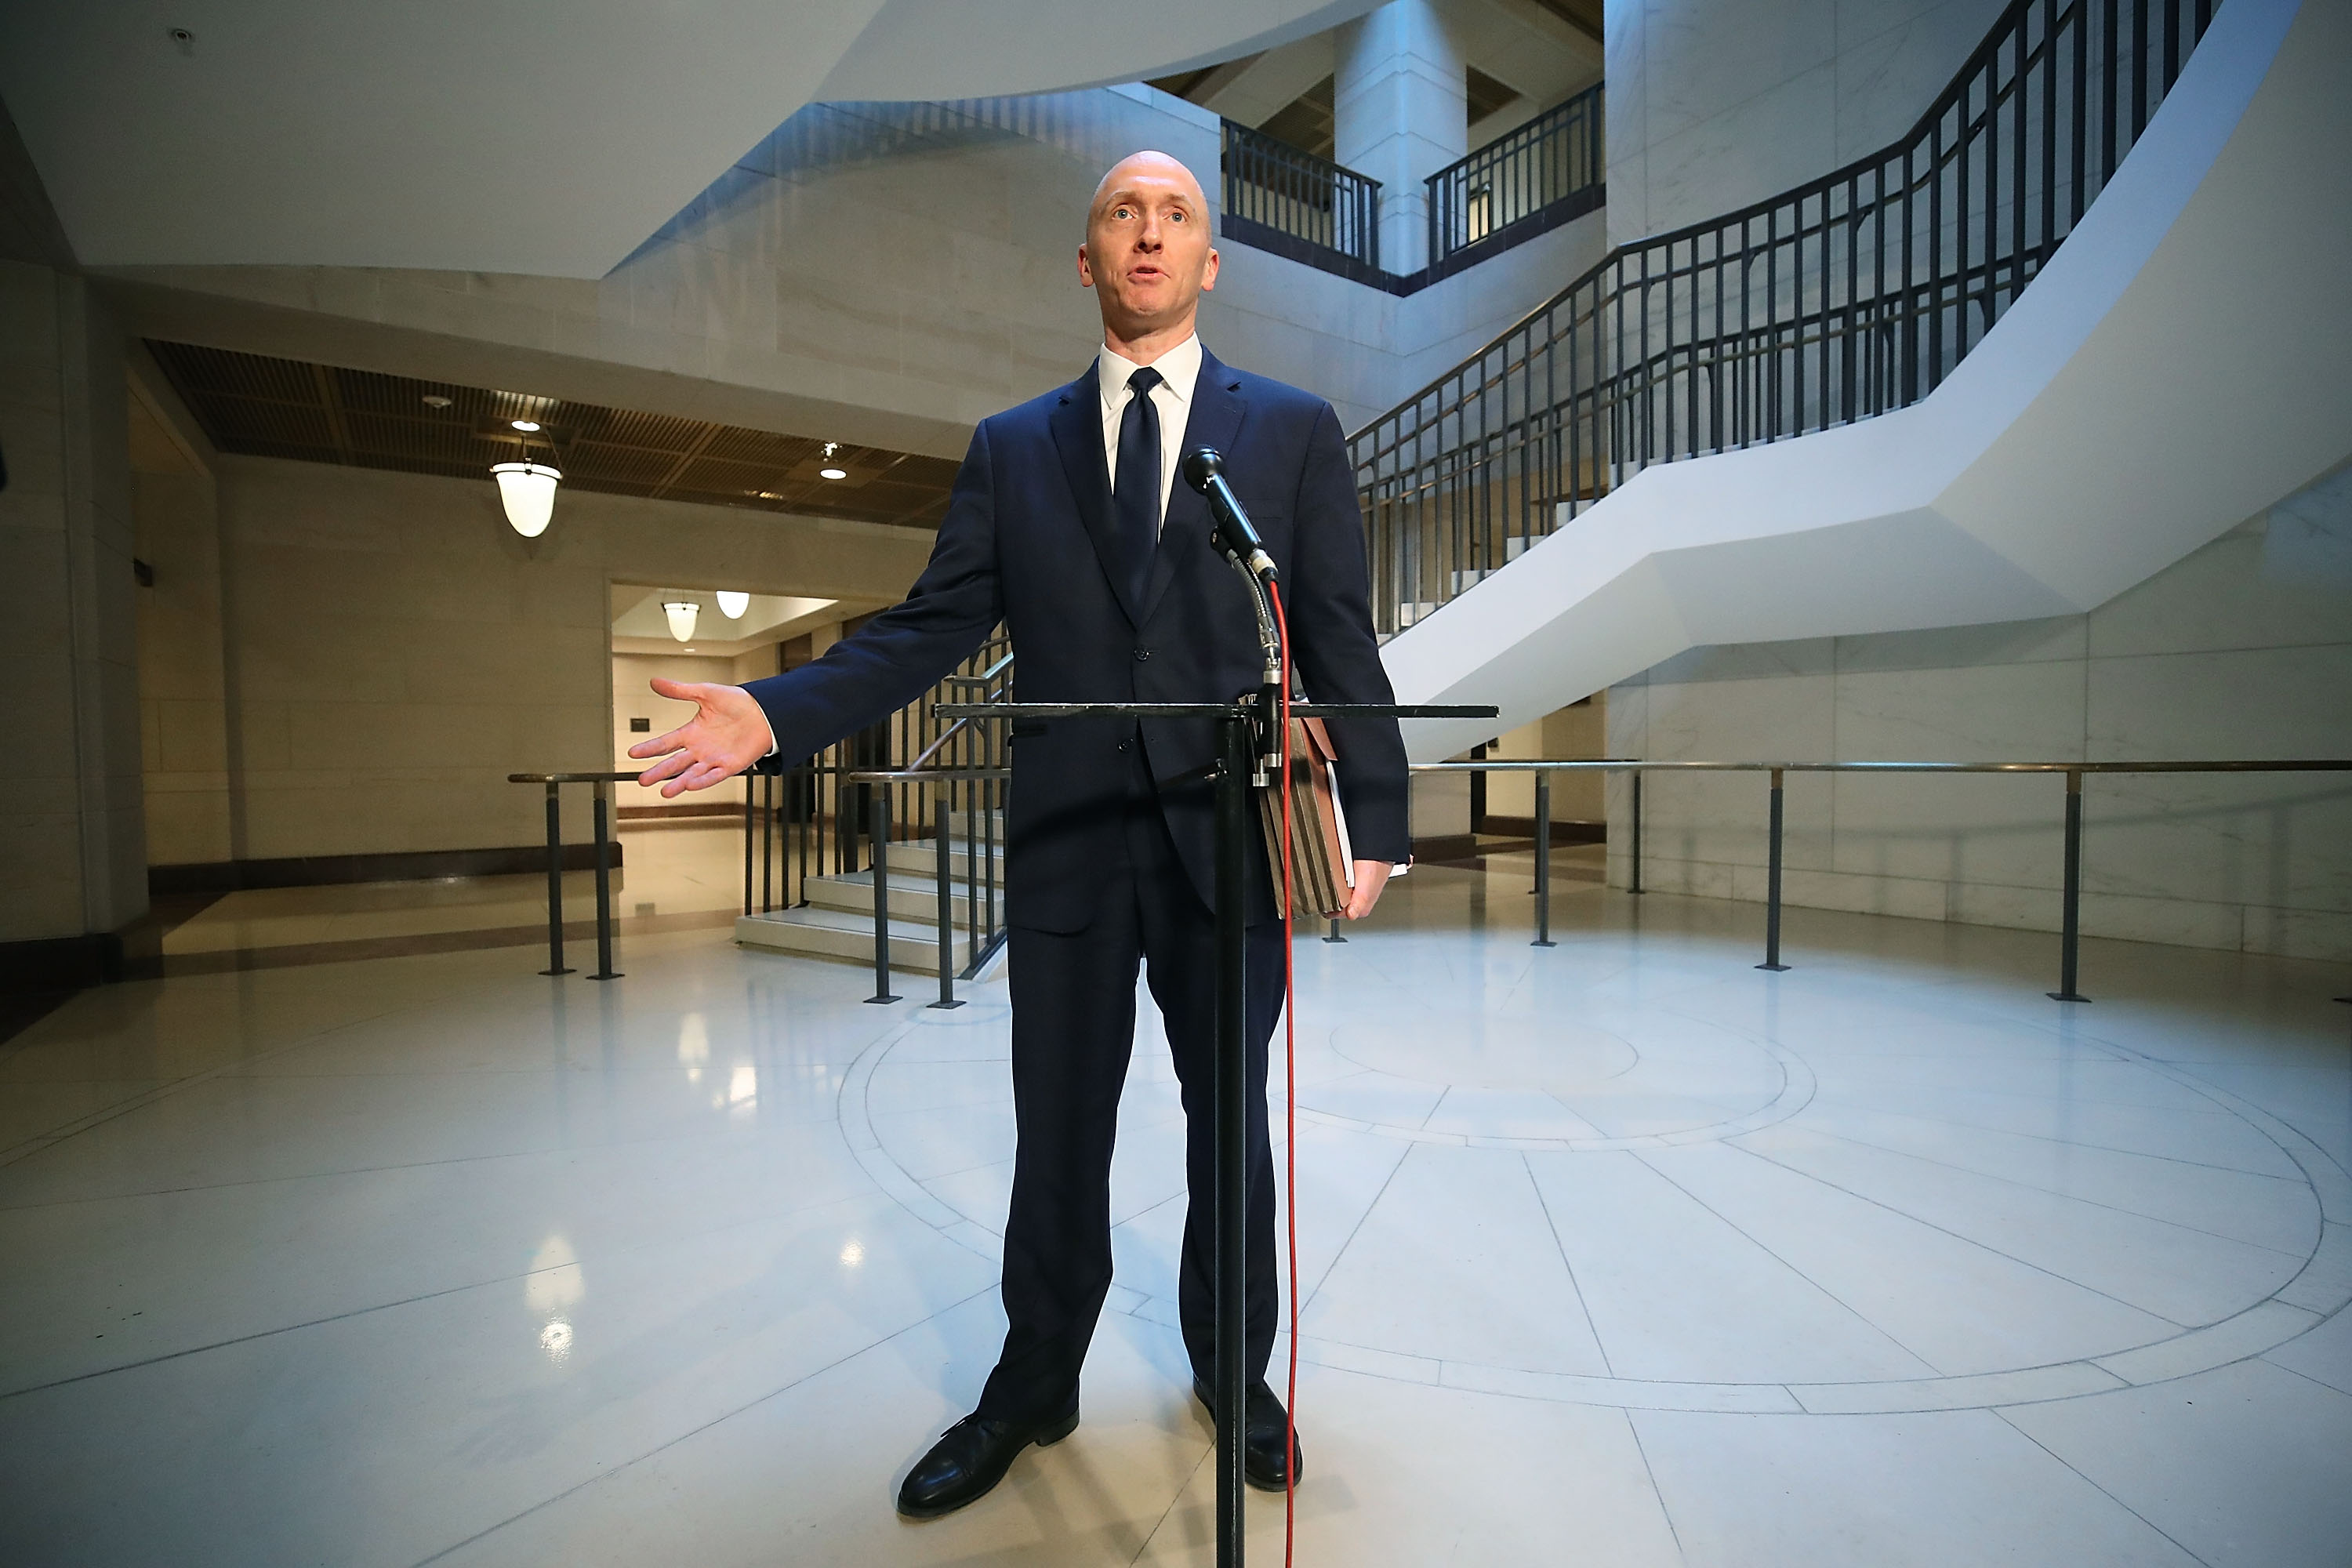 Carter Page, former foreign policy adviser for the Trump campaign, speaks to the media after testifying before the House Intelligence Committee on November 2, 2017 in Washington, DC. The committee is conducting an investigation into Russia's tampering in the 2016 election. (Photo by Mark Wilson/Getty Images)